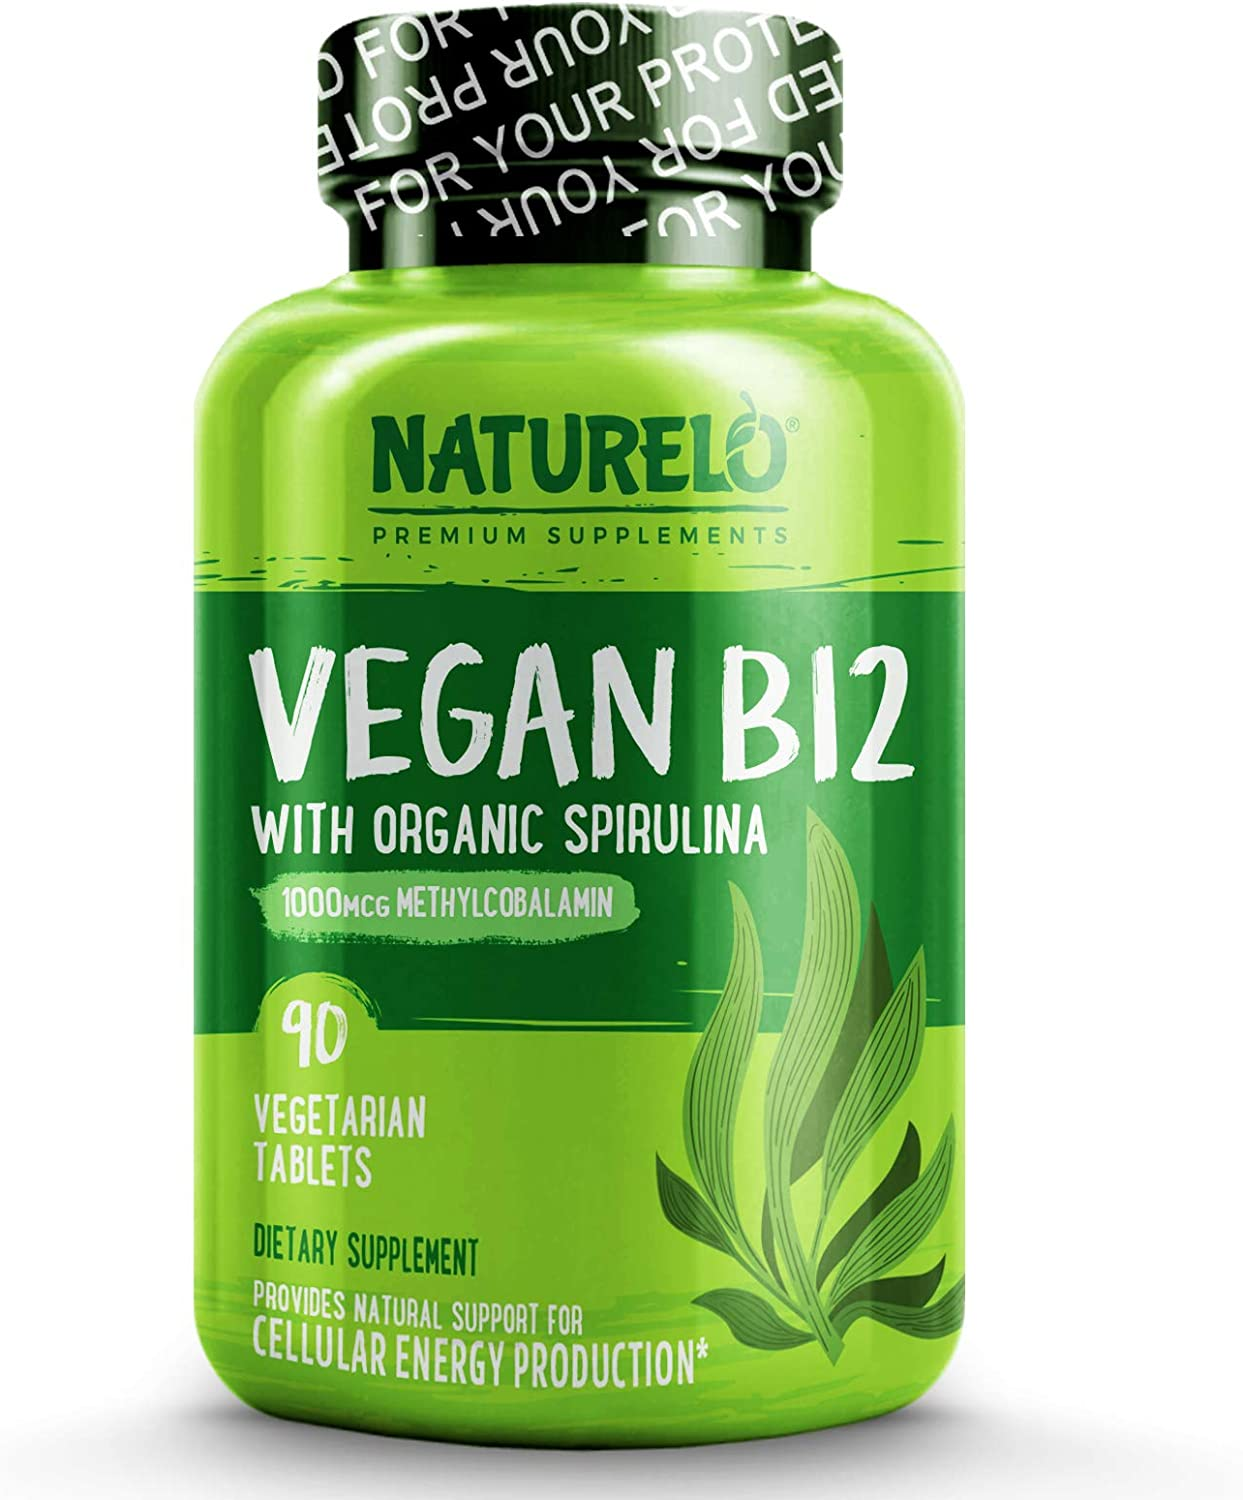 NATURELO Vegan B12 with Organic Spirulina - Best Natural Supplement for Energy, Metabolism and Stress - High Potency 1000 mcg B12 (Methylcobalamin) - Non GMO, Gluten Free - 90 Tablets